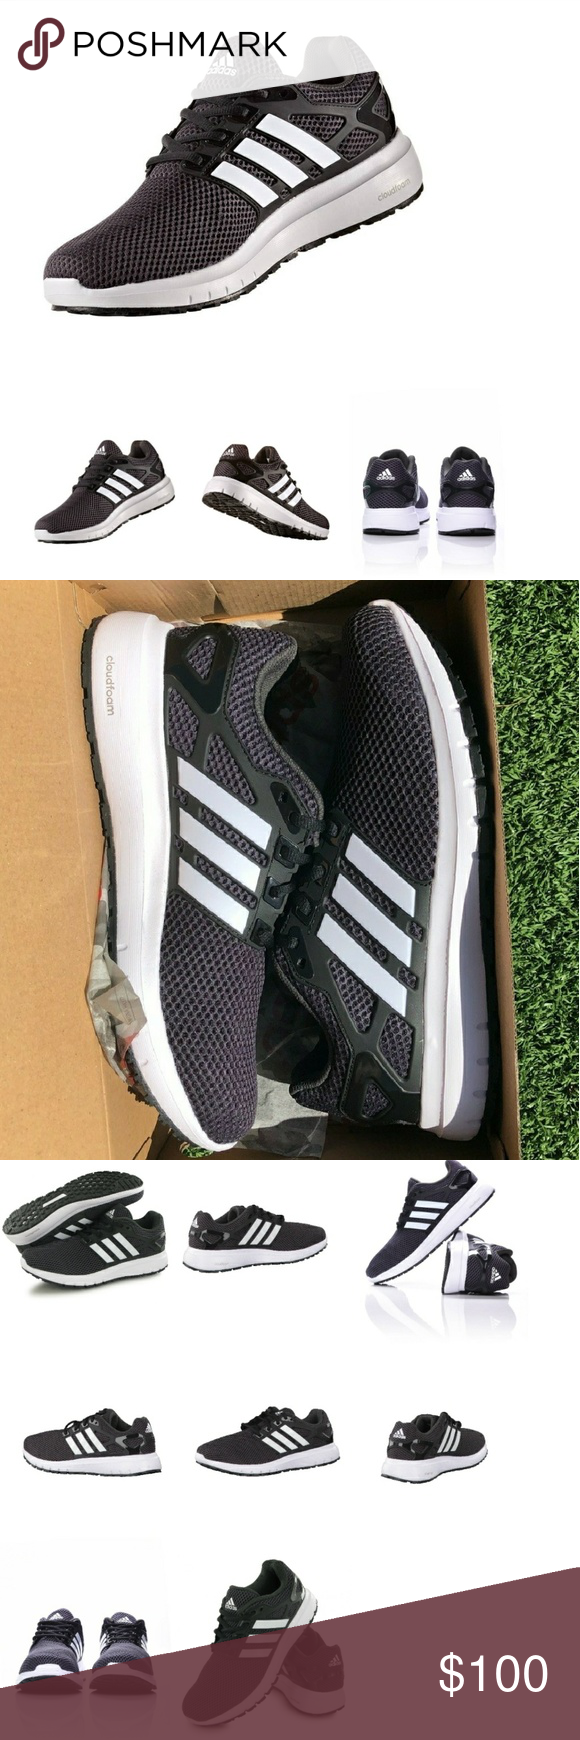 2 Left Adidas Energycloud M By1924 Adidas Energy Cloud M Cloudfoam Black White Men Running Shoes Trainers By1924 Adidas Fashion Trends Clothes Design Fashion